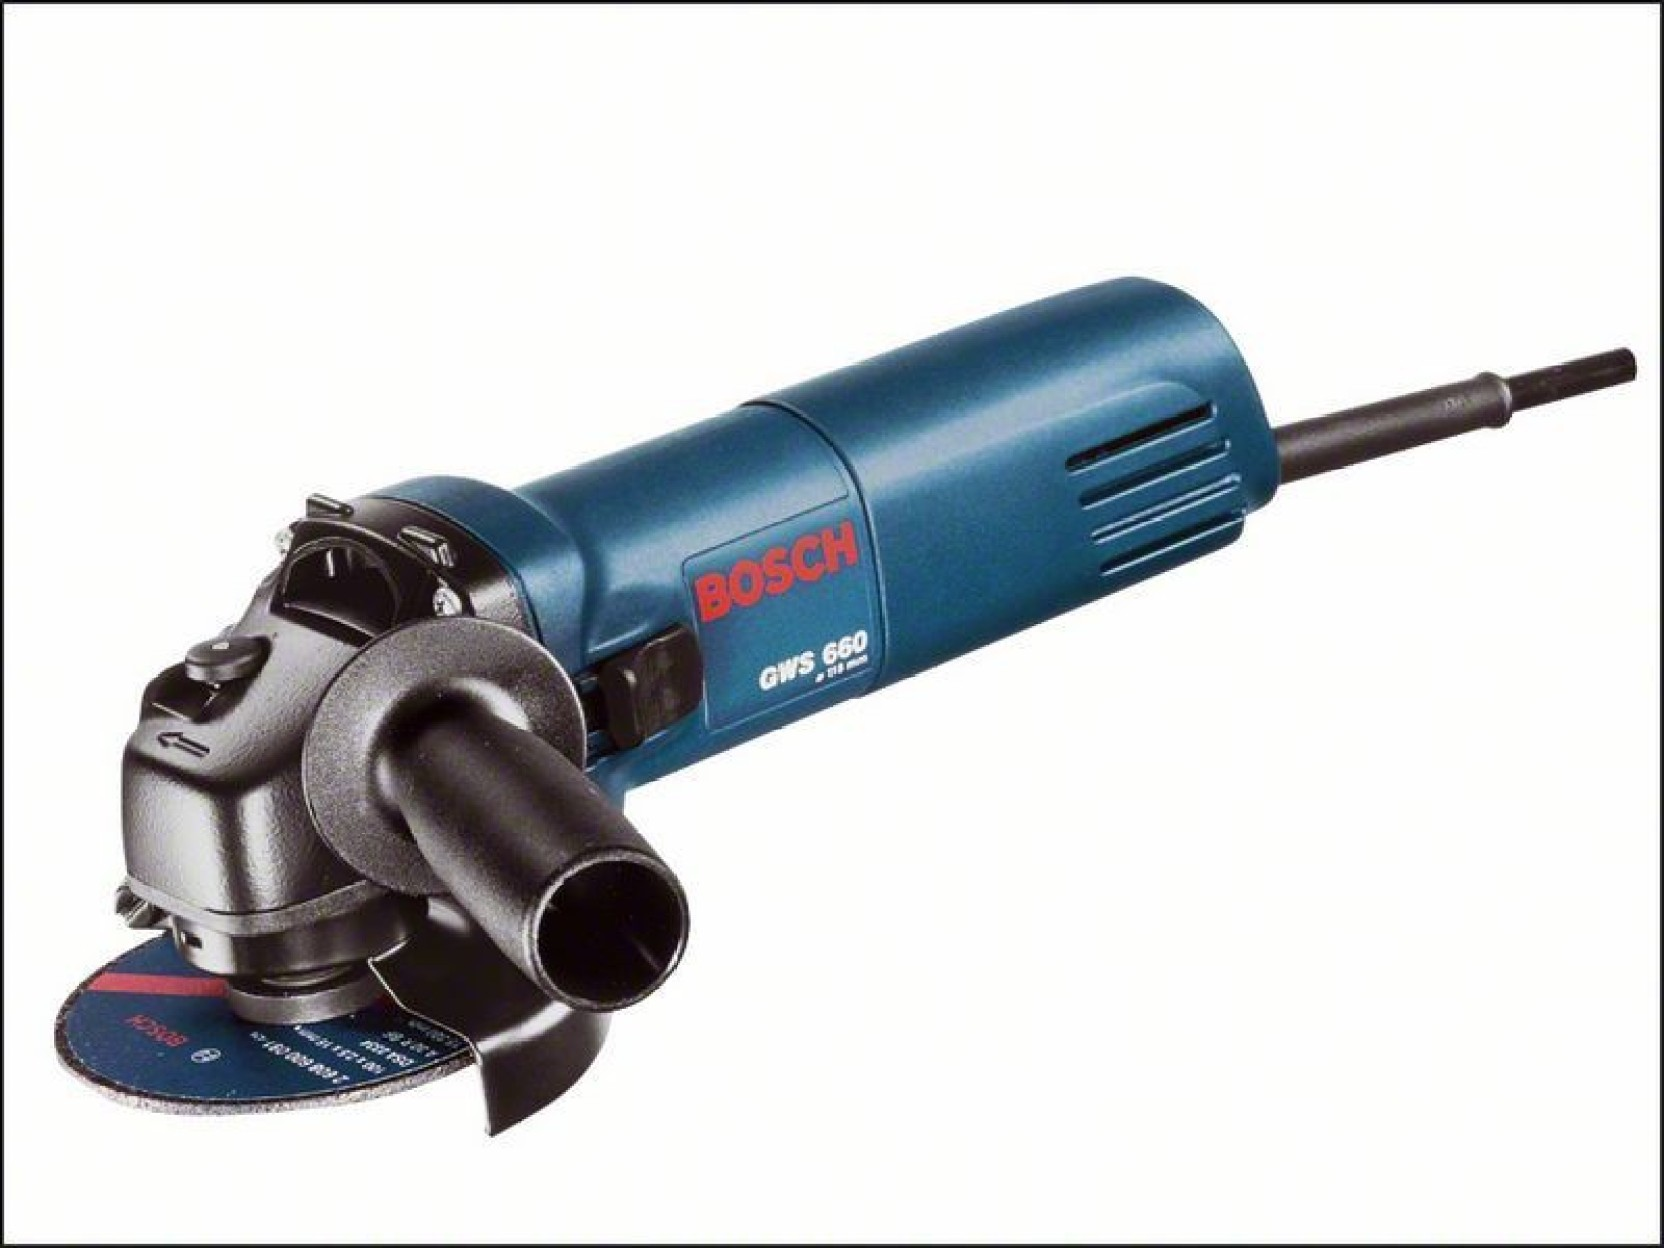 bosch gws 600 professional angle grinder price in india. Black Bedroom Furniture Sets. Home Design Ideas